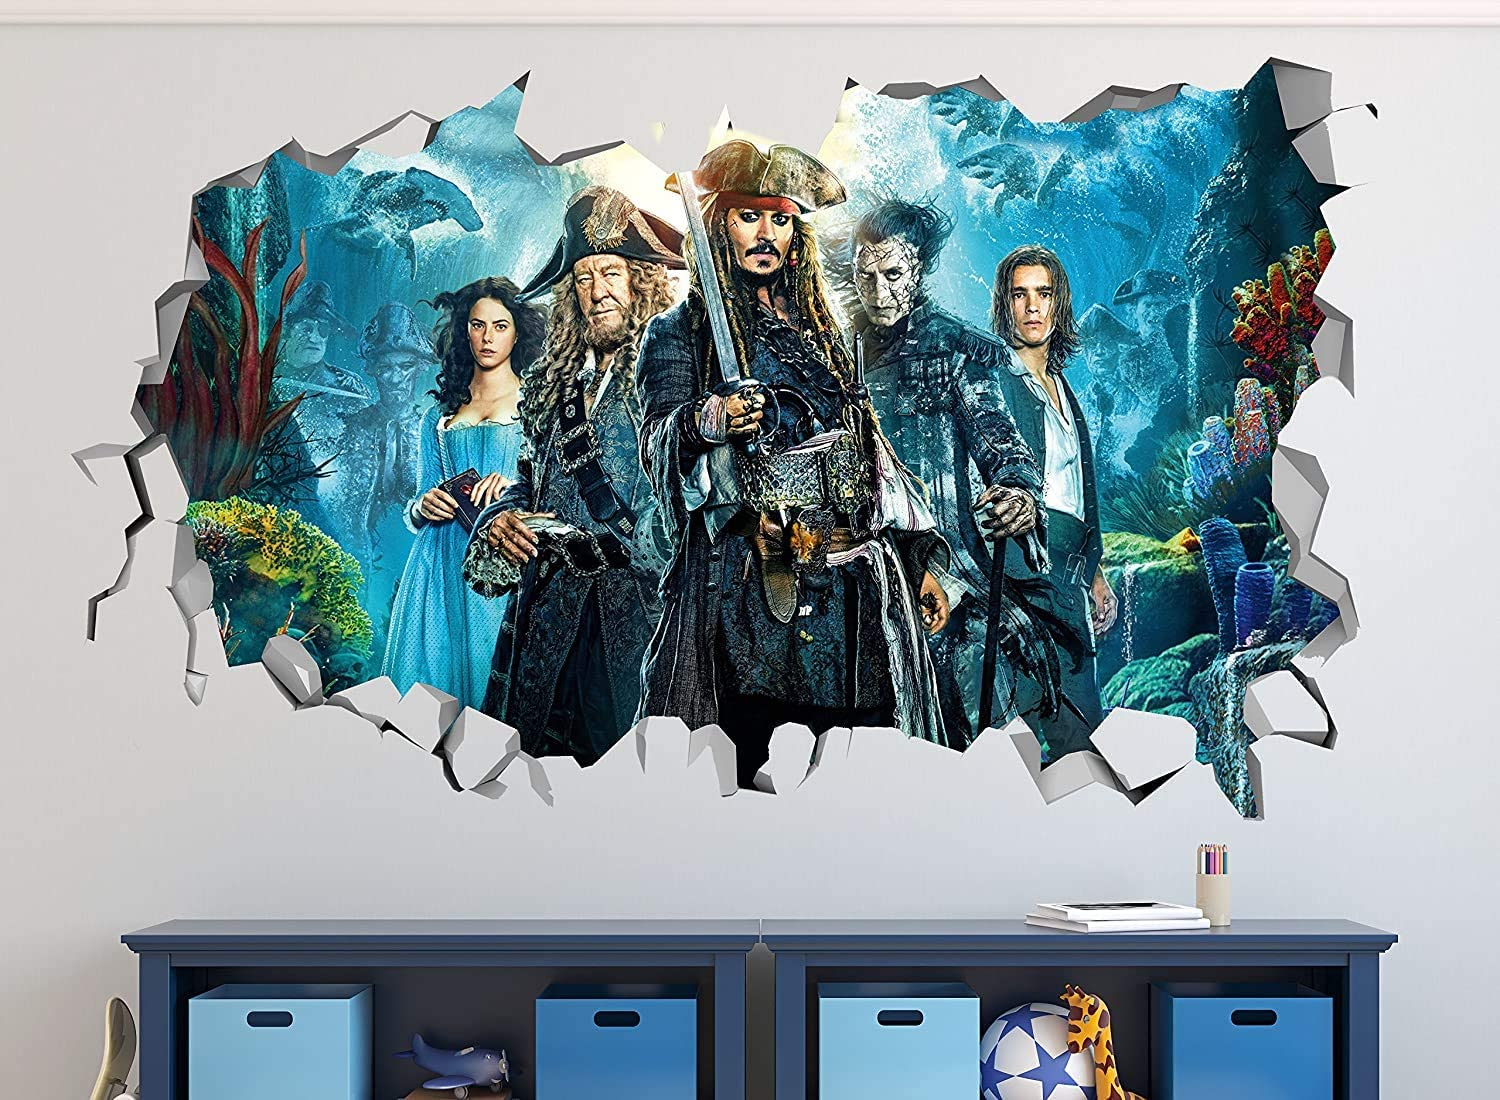 "Pirates of the Caribbean 5 Smashed 3D Wall Decal Mural Art Kids Boy Smash Home Decor Removable Sticker Vinyl WW30 (GIANT (50""W x 30""H))"